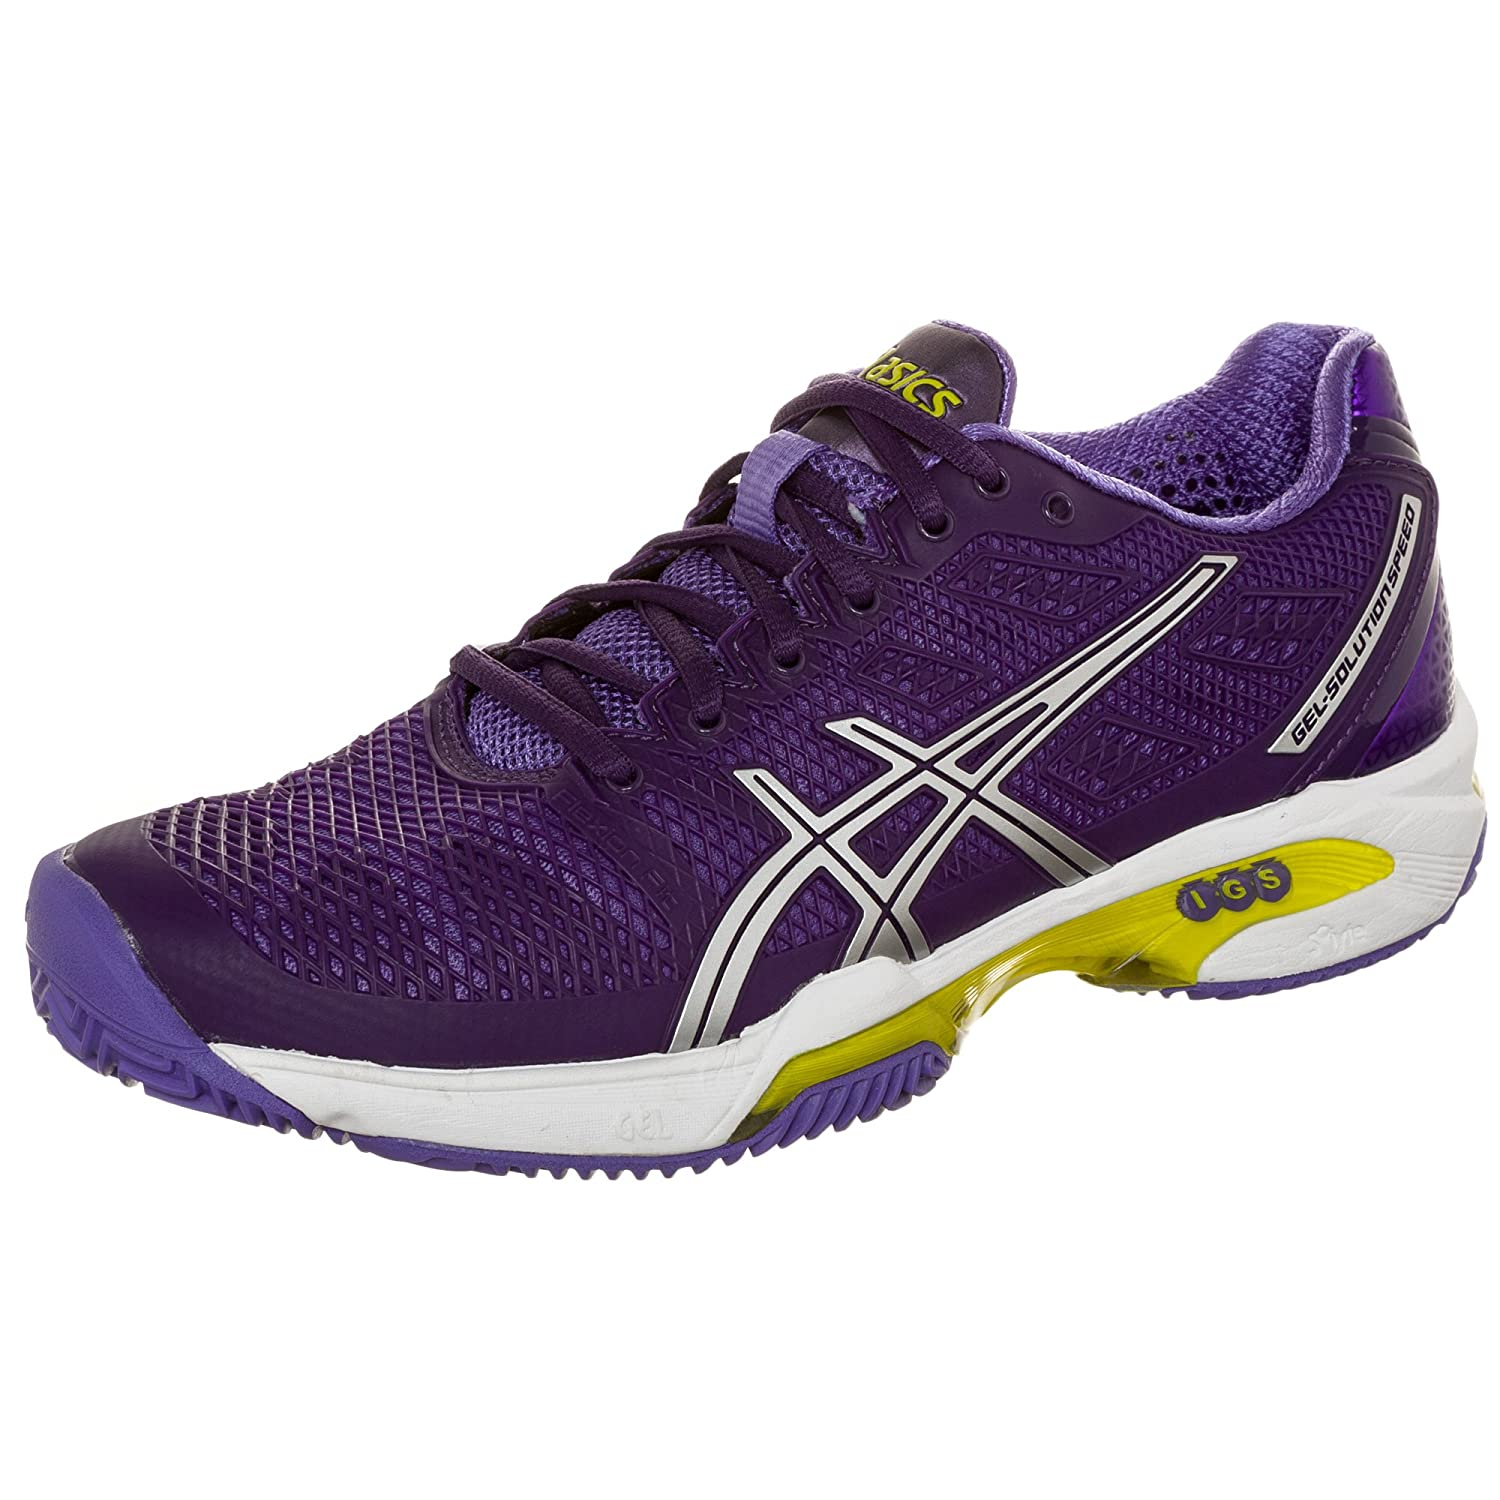 ZAPATILLAS ASICS PADEL GEL SOLUTION SPEED 2 CLAY: Amazon.es